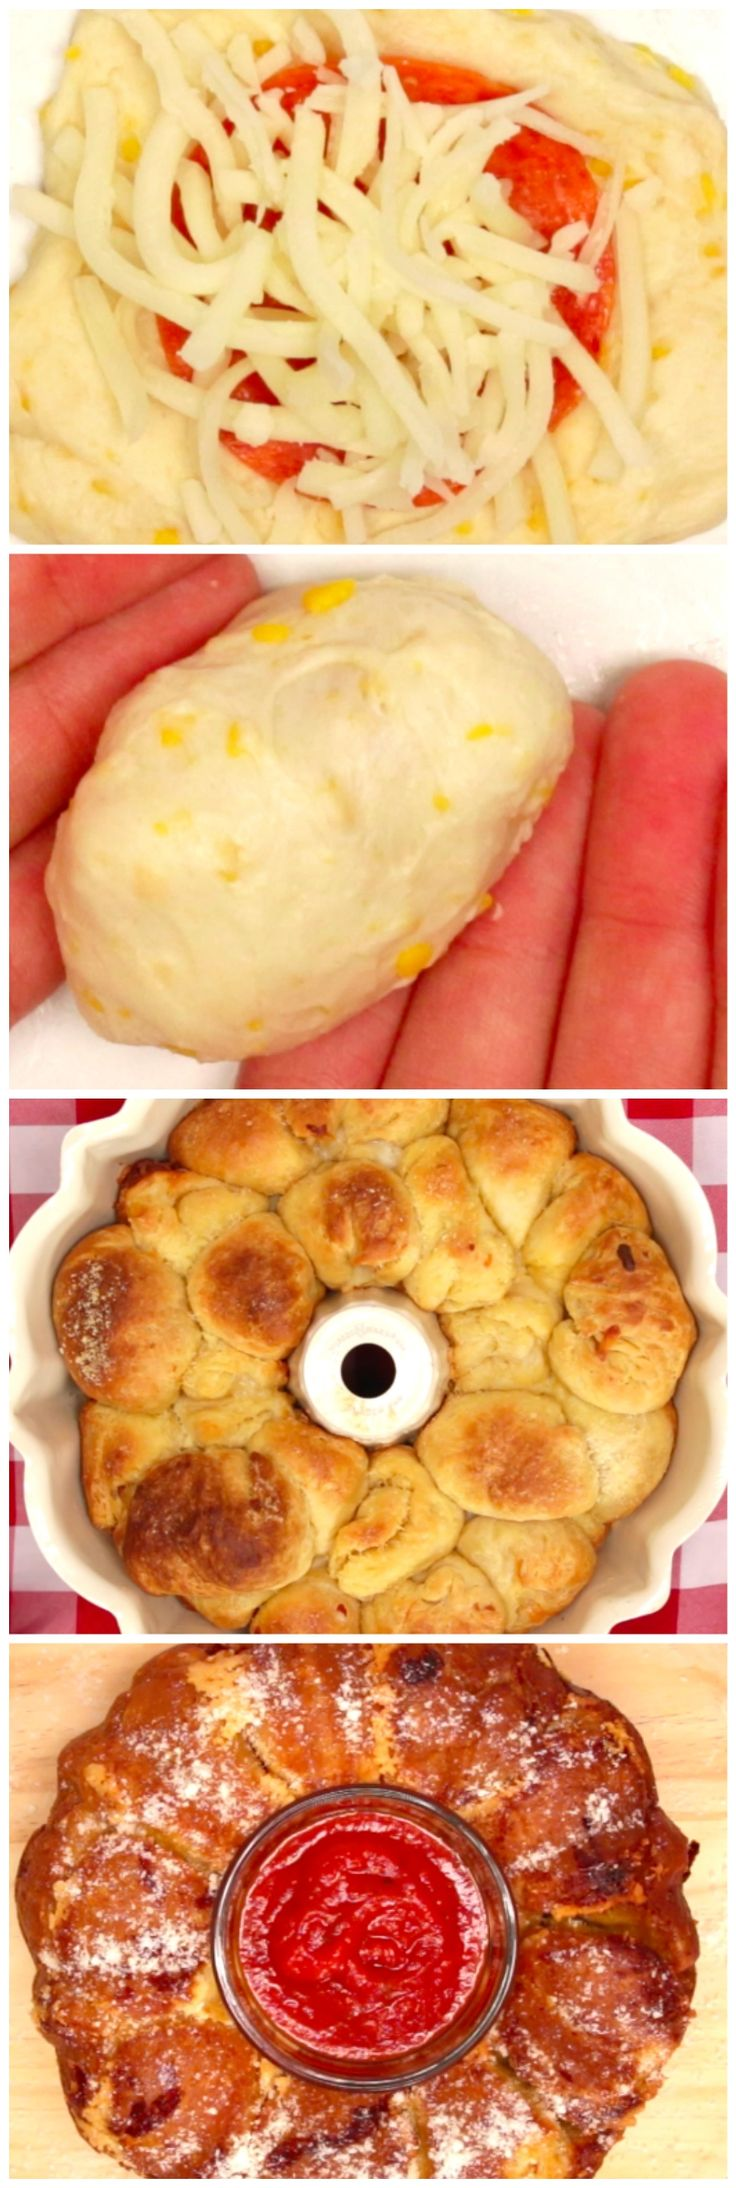 Pizza Monkey Bread:  2 tubes Grands Biscuits, package of pepperoni, package of shredded mozzarella, stick of butter, melted w/garlic to taste, parm. 375 for 25 to 30 min or until done.